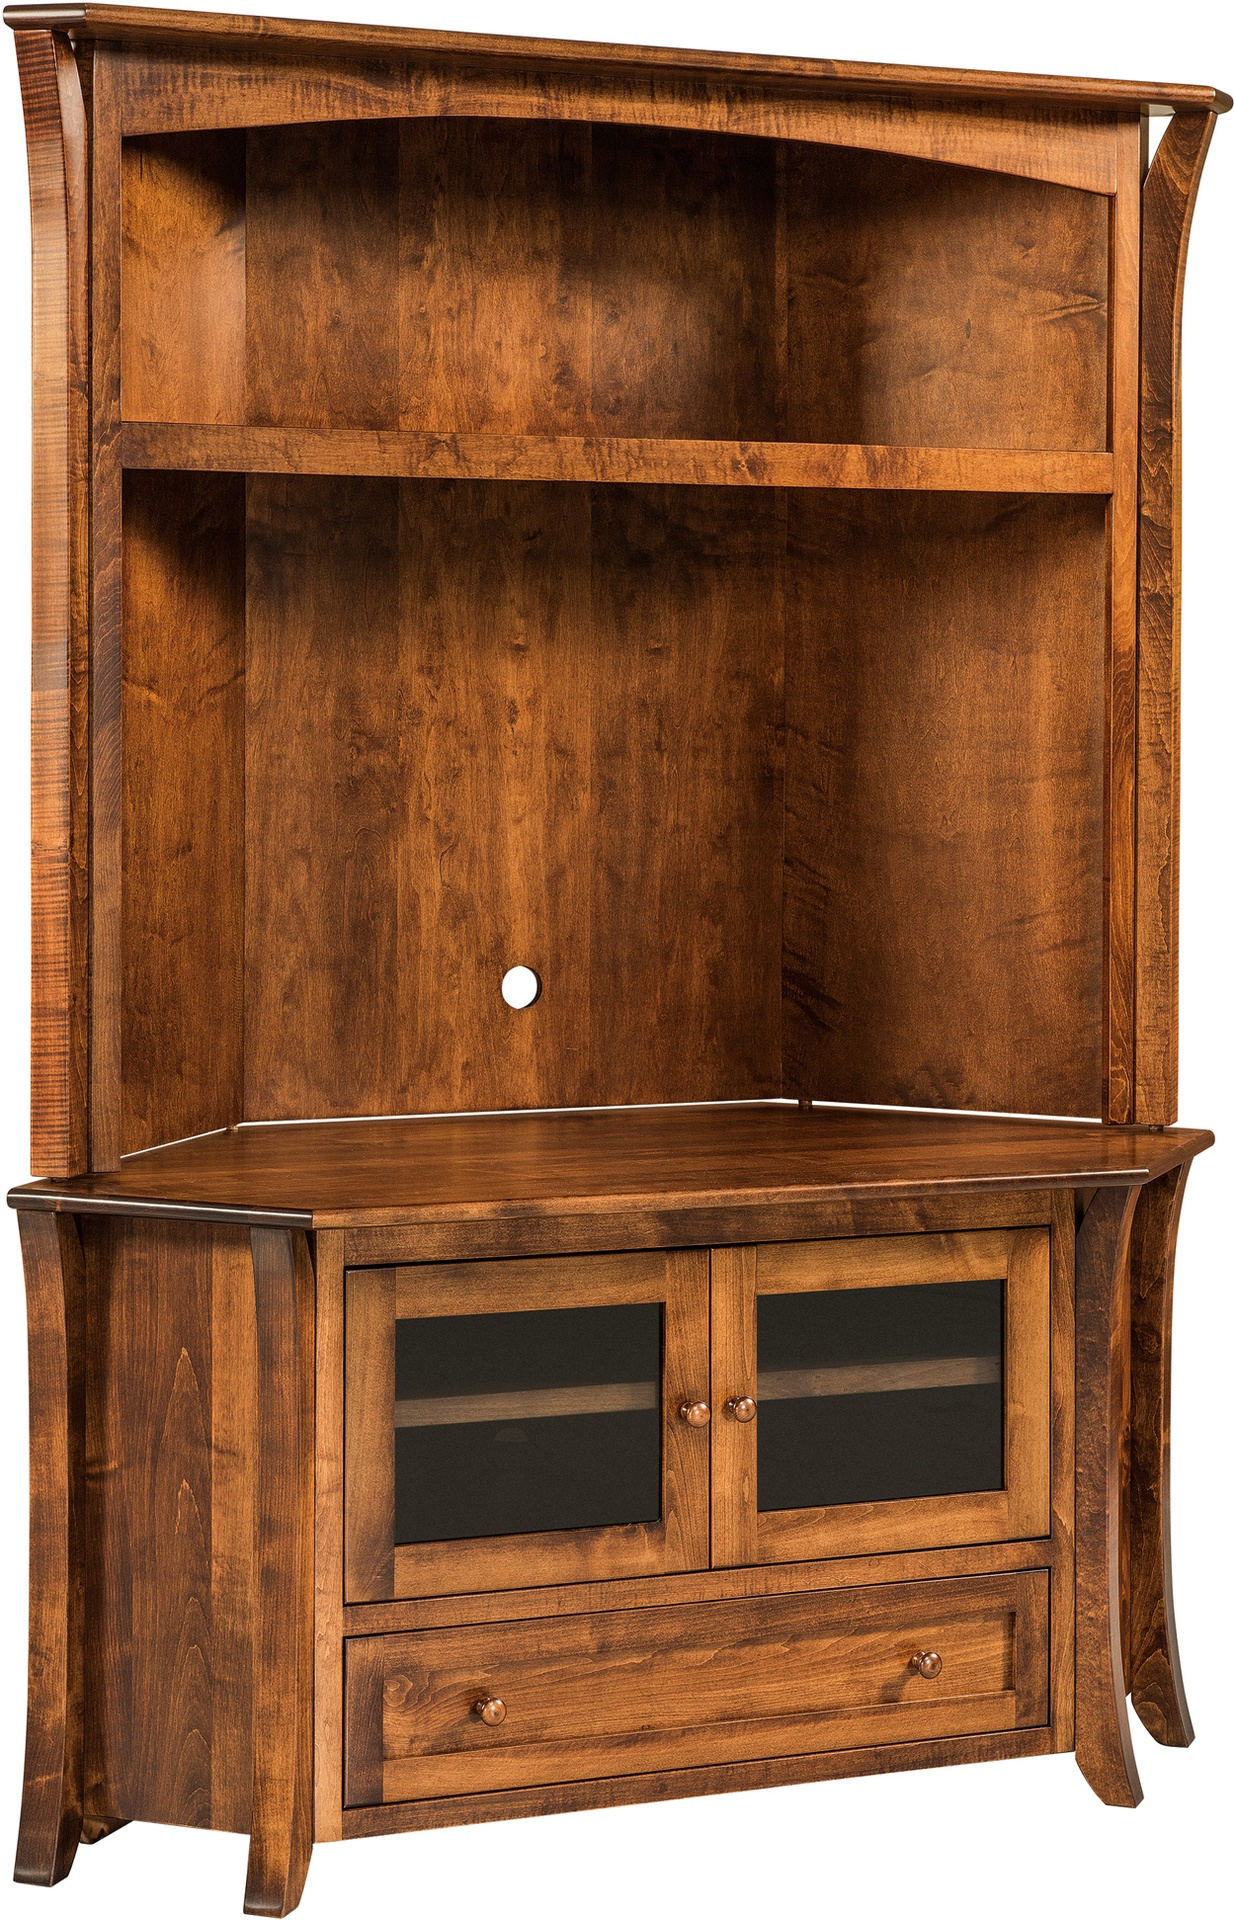 Caledonia TV Corner Cabinet with Hutch Top